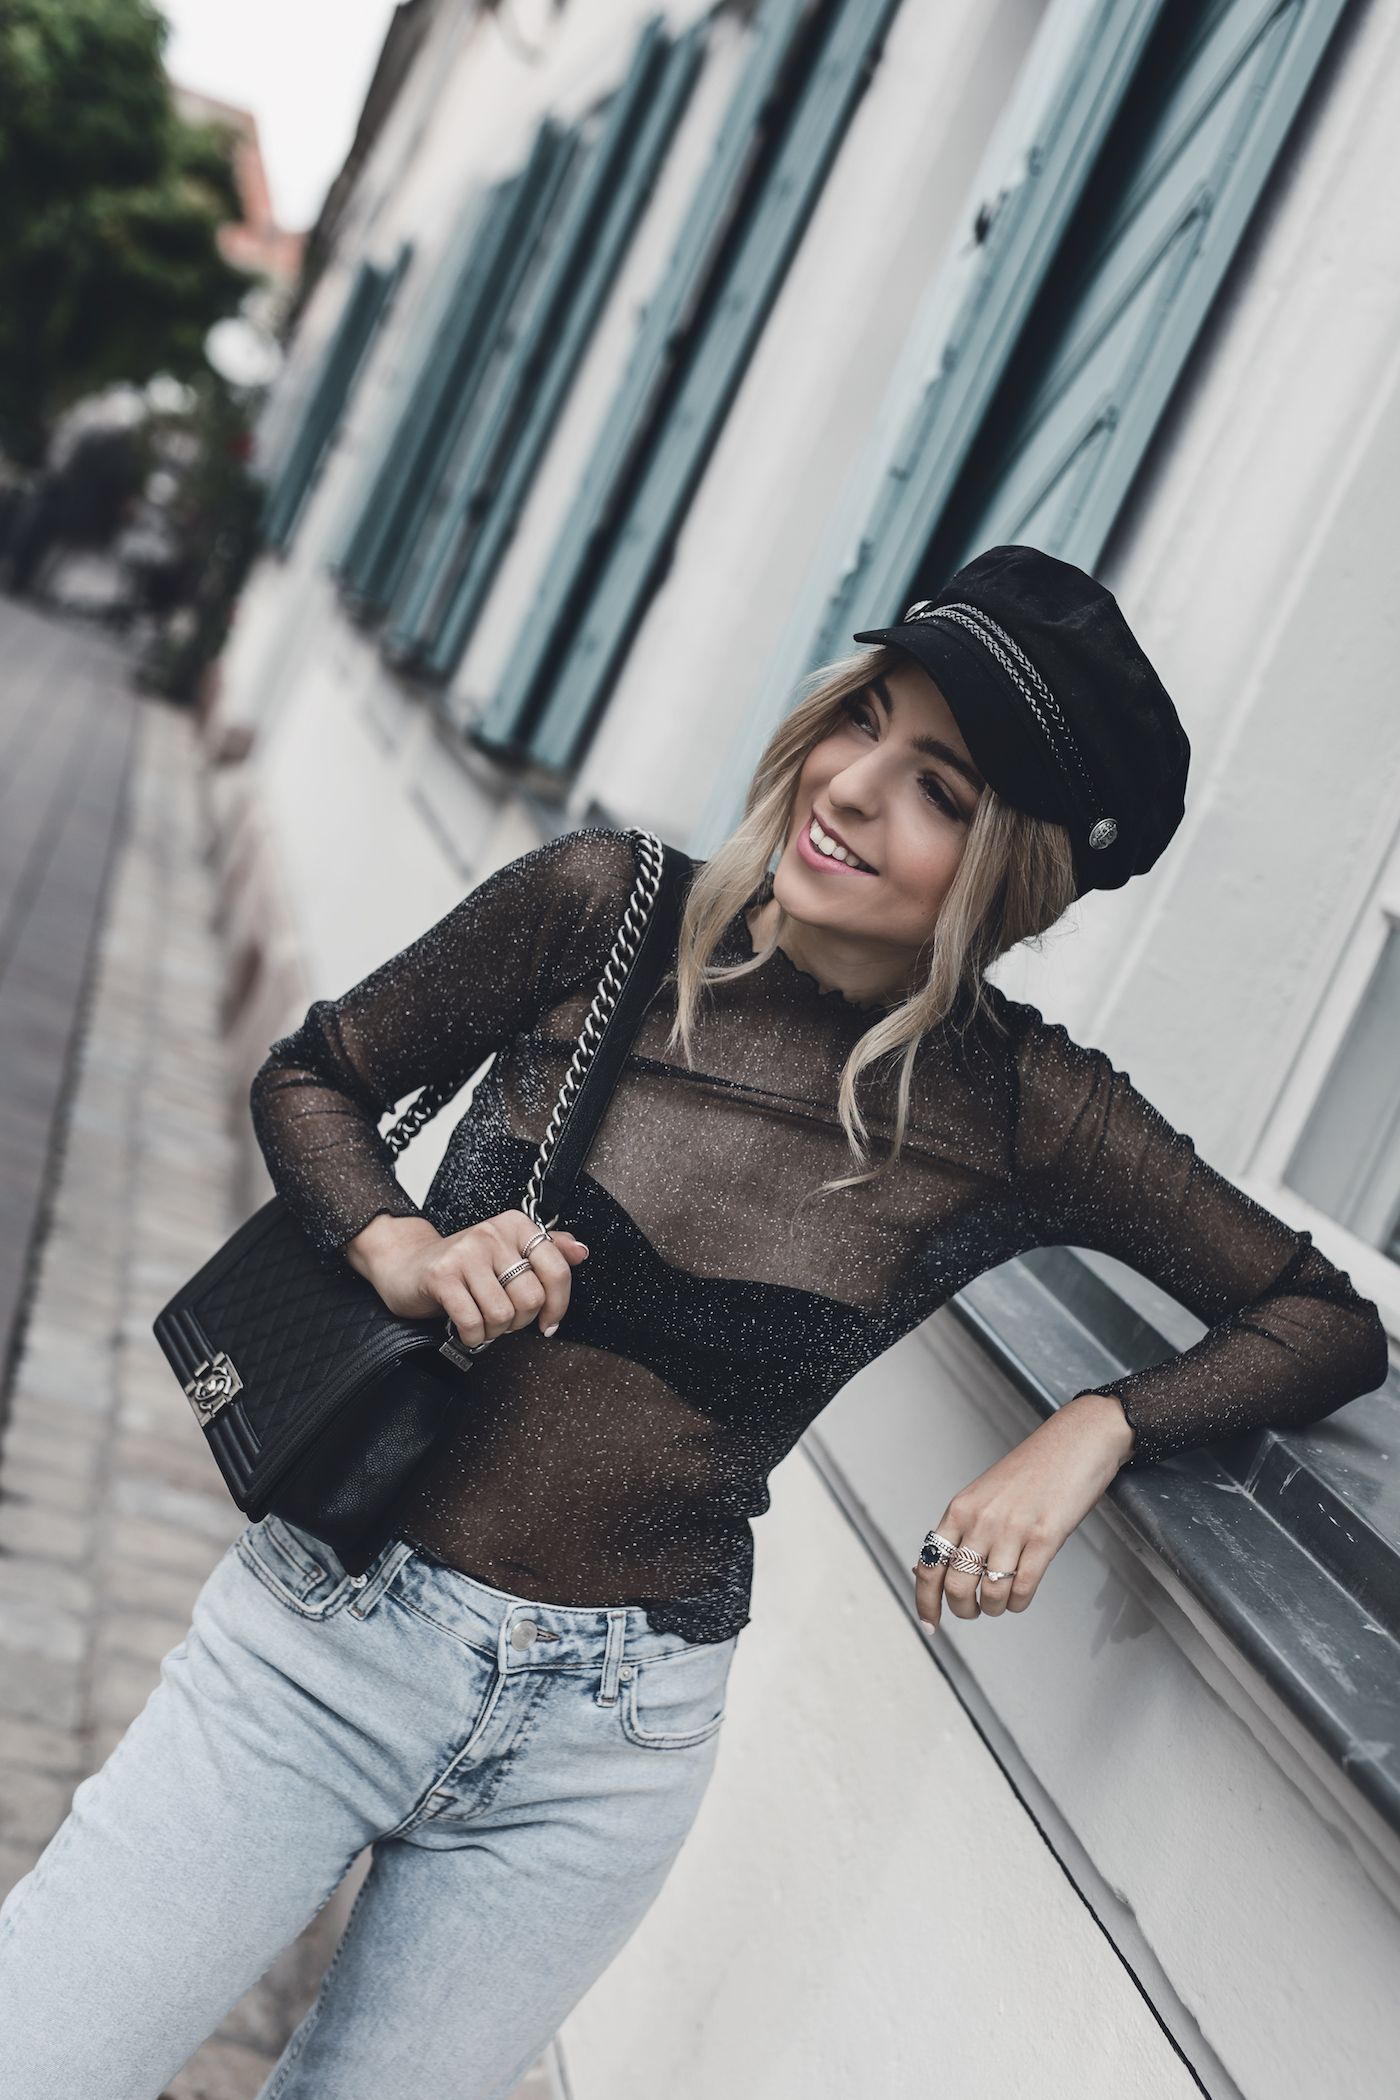 01f60199001b9 Baker Boy Hat Outfit Street Style 2017 Women Casual Winter Fall Fashion  Outfit Ideas Newsboy Cap